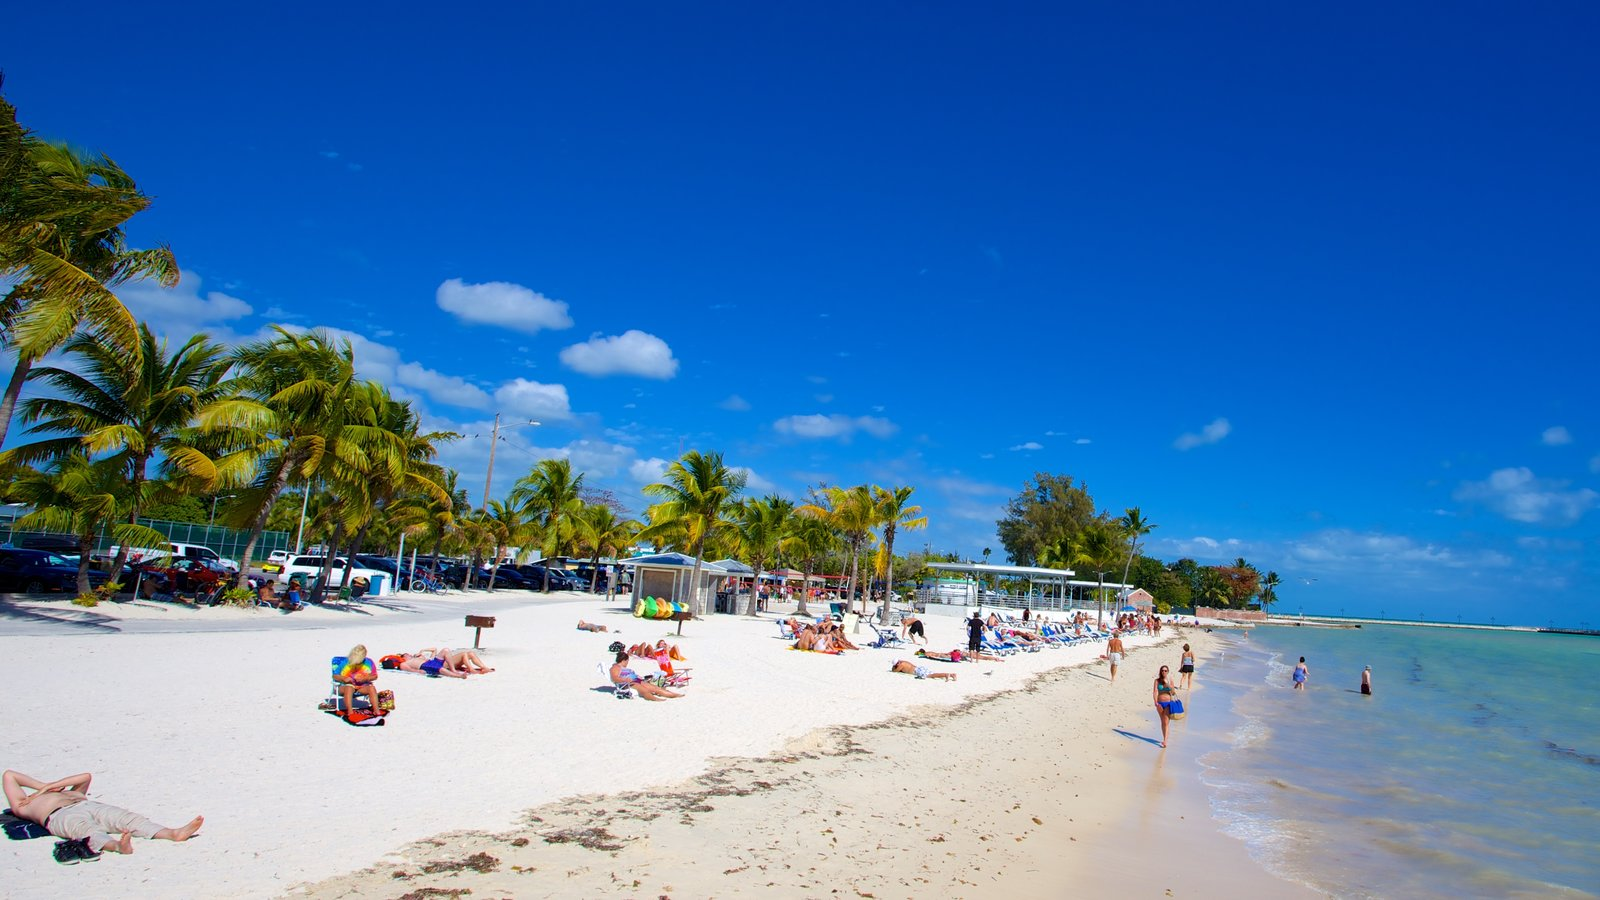 Higgs Beach which includes tropical scenes and a sandy beach as well as a large group of people